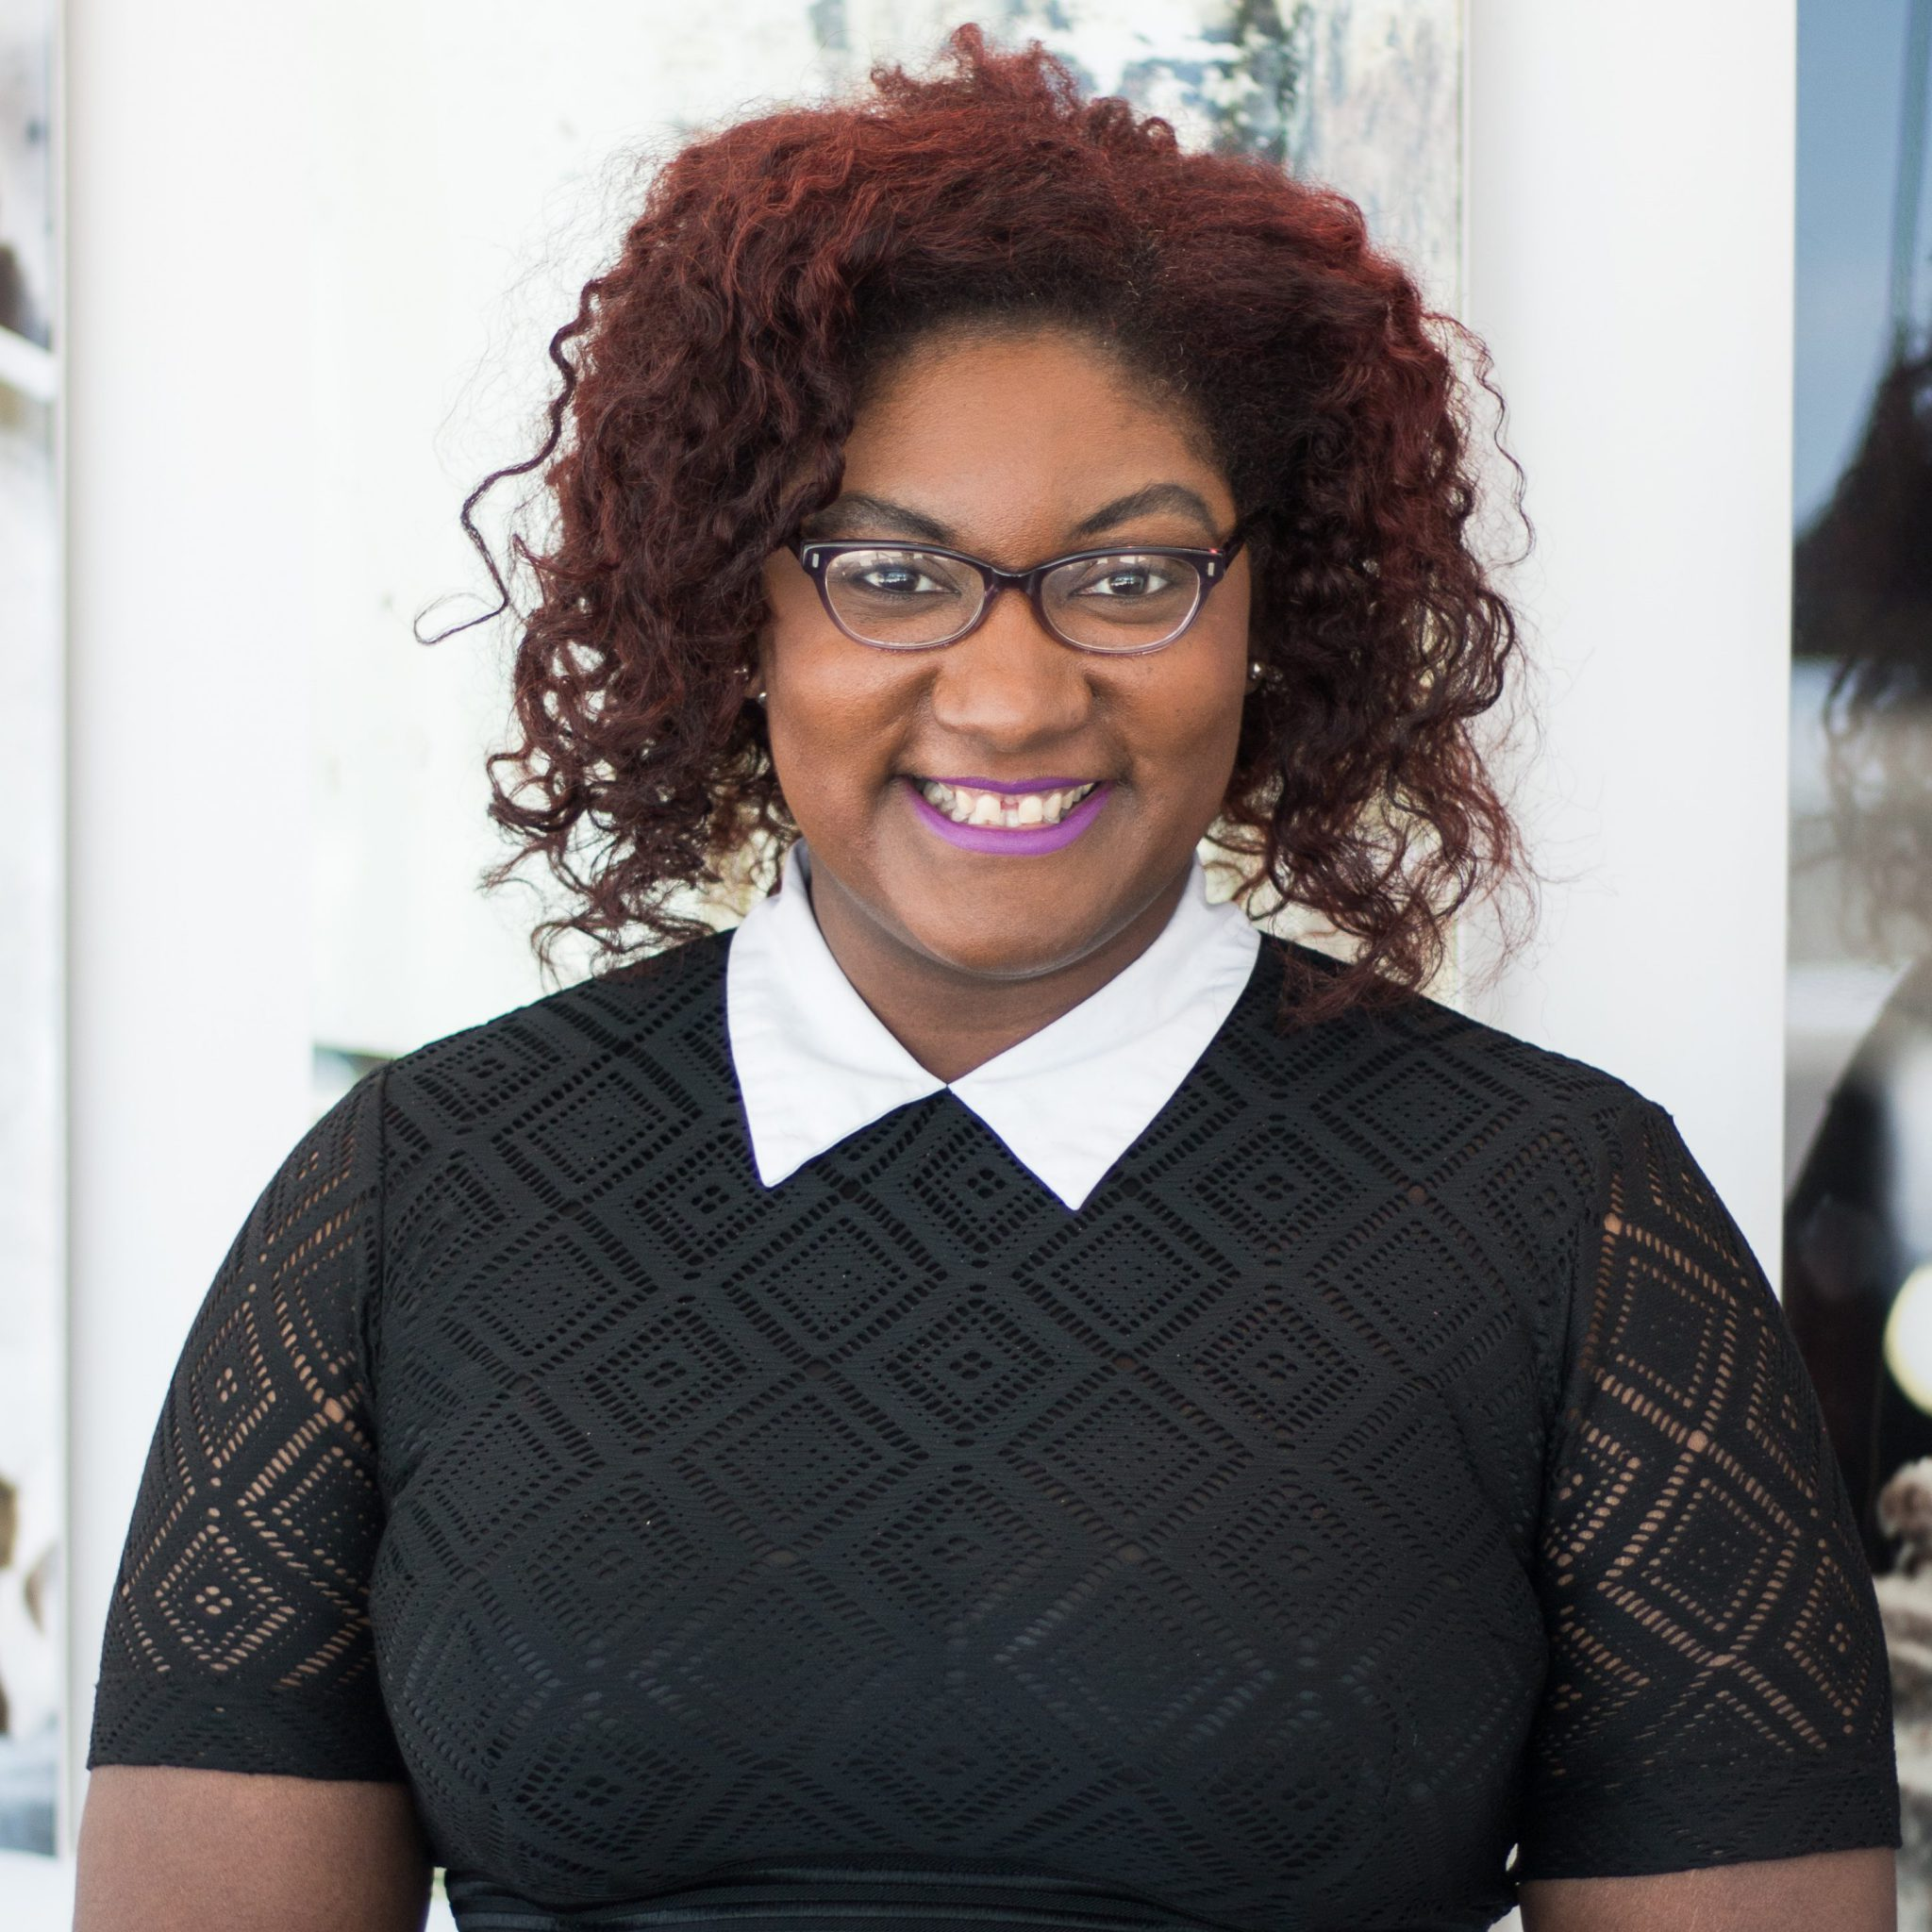 Jacqueline Jones, Founder/CEO of One Degree MMM